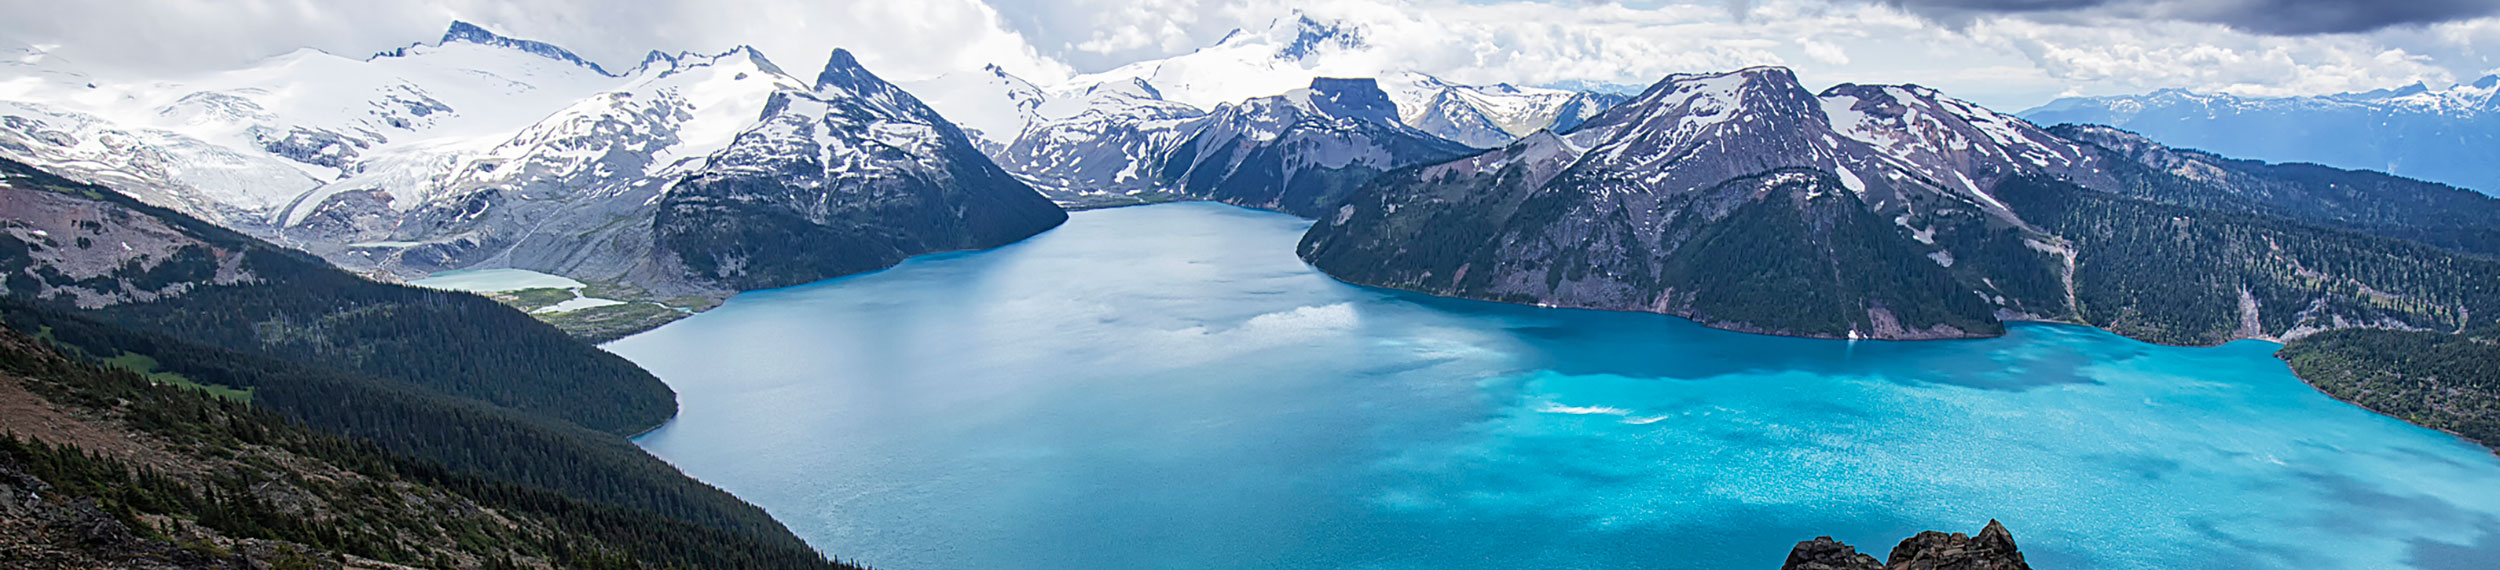 Garibaldi Lake surrounded by snow-capped mountains viewed from Panorama Ridge in summer in British Columbia, Canada.